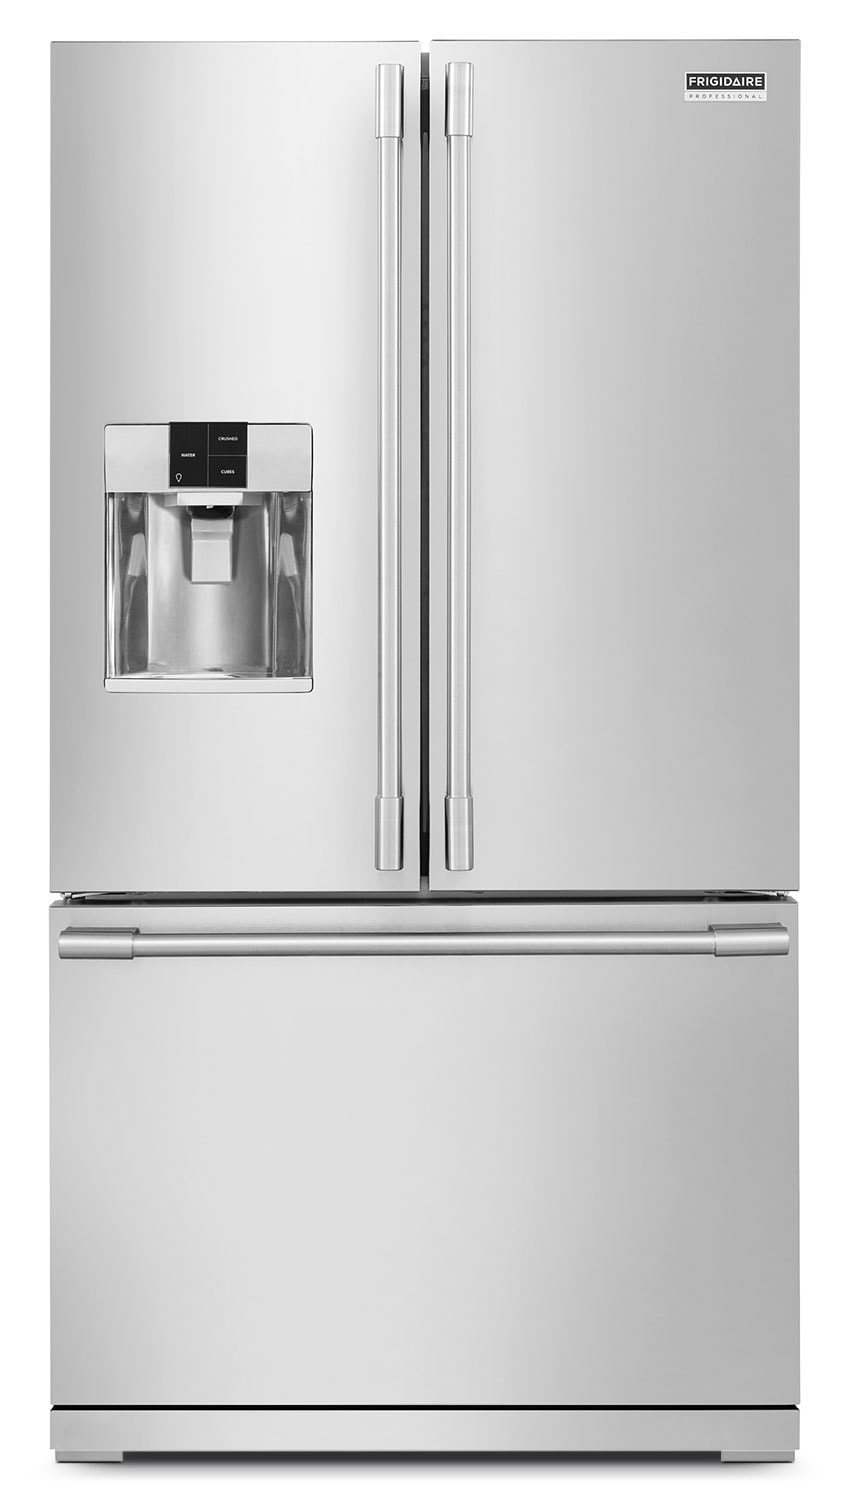 Frigidaire® Professional® 27.8 Cu. Ft. French Door Refrigerator - Stainless Steel